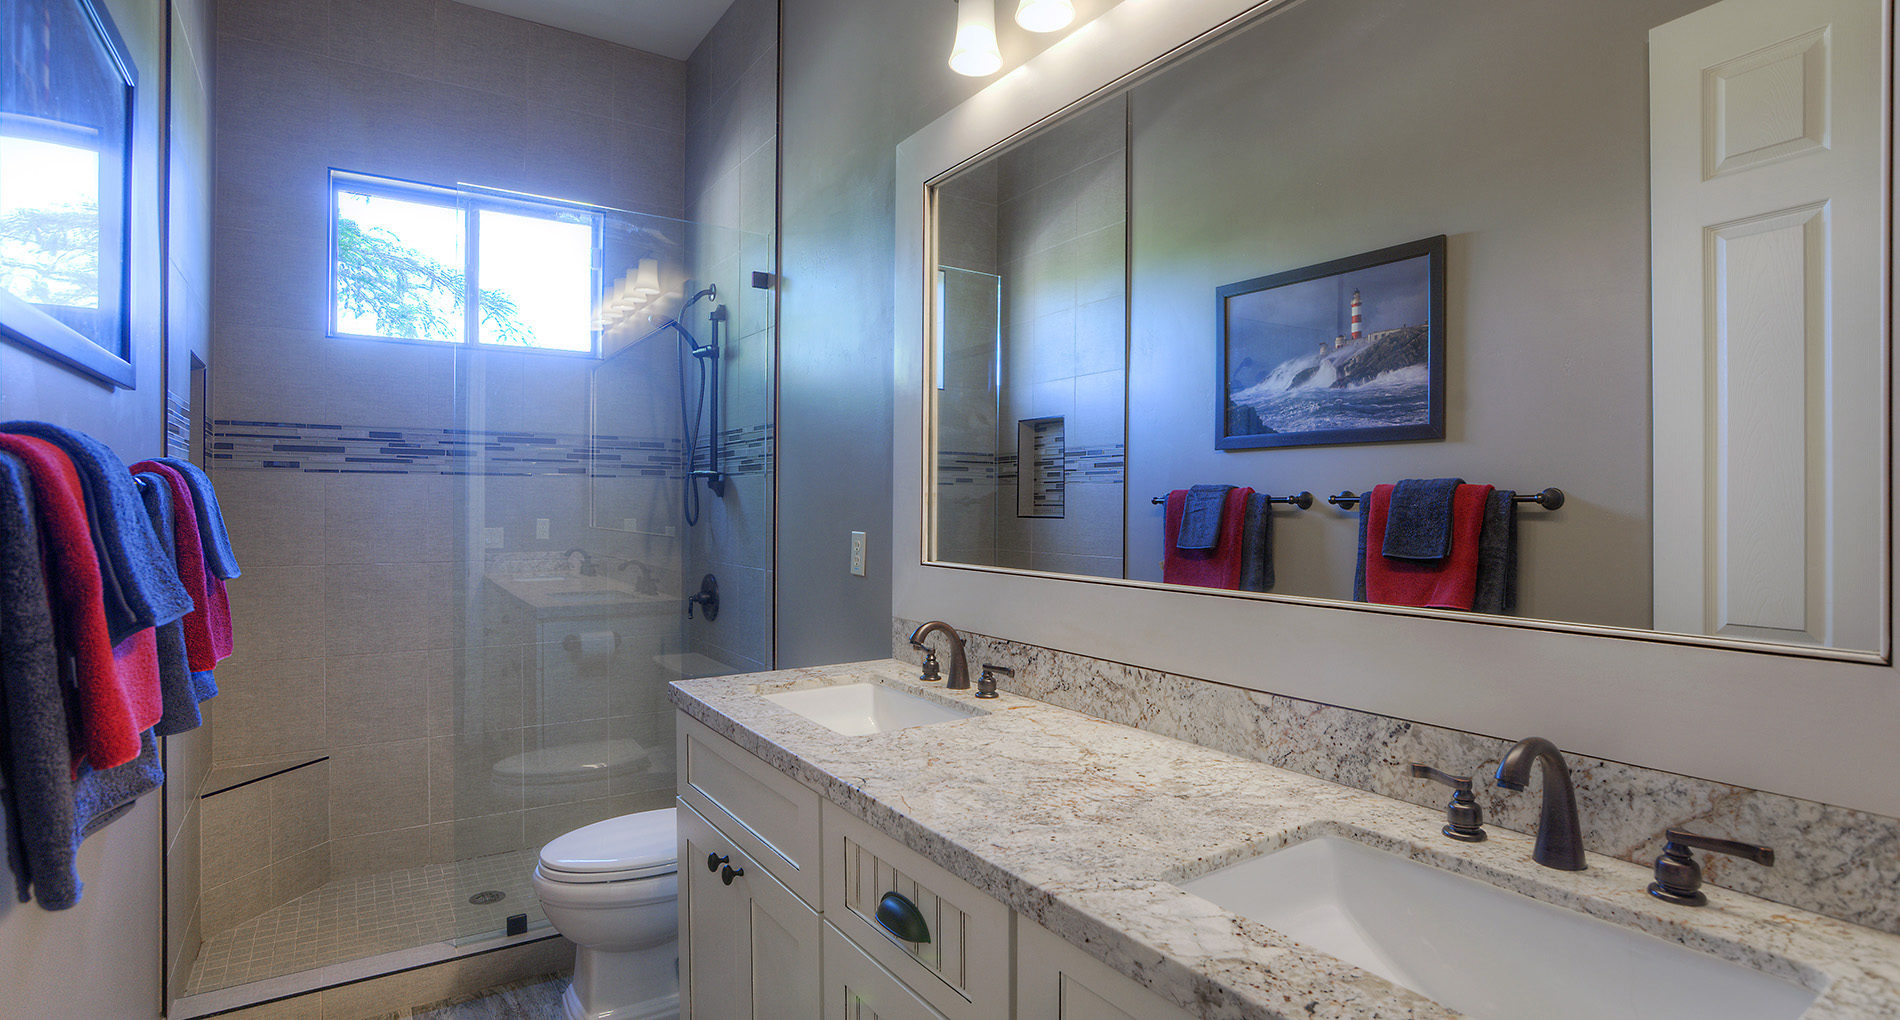 Bathroom Remodel Scottsdale Dalelane Slider